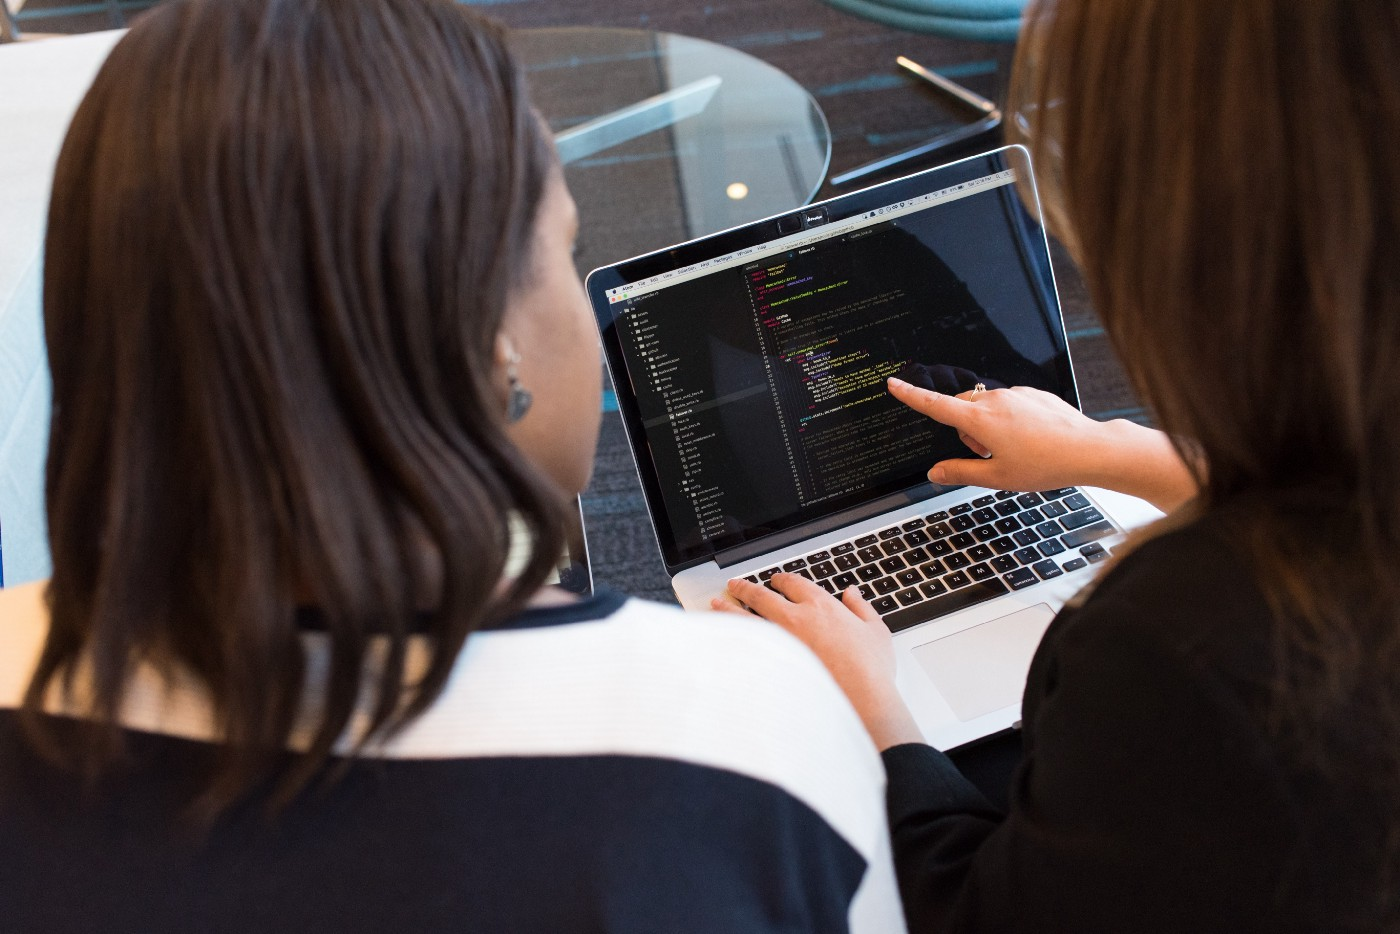 two women analyzing computer code on a laptop